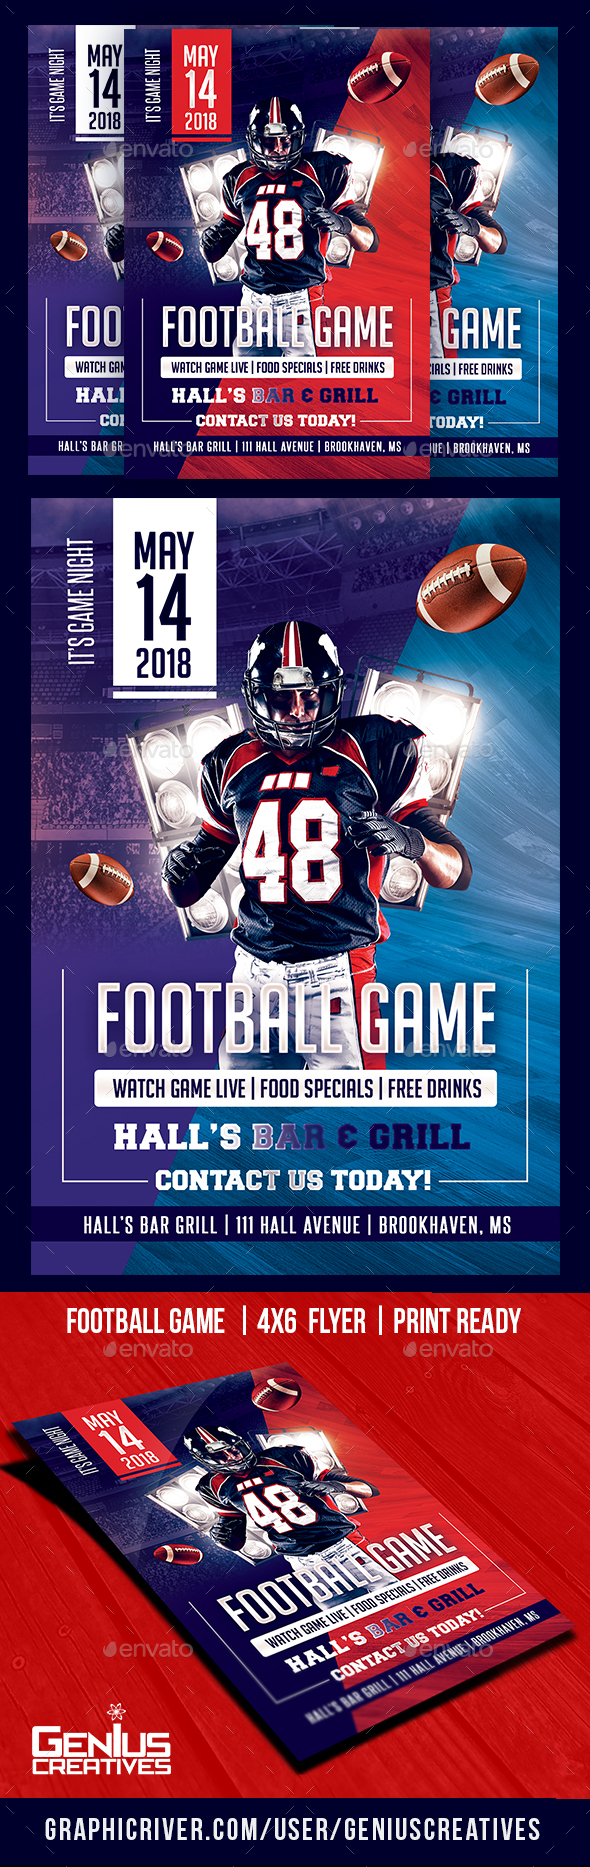 Football GameDay Flyer Template - Sports Events